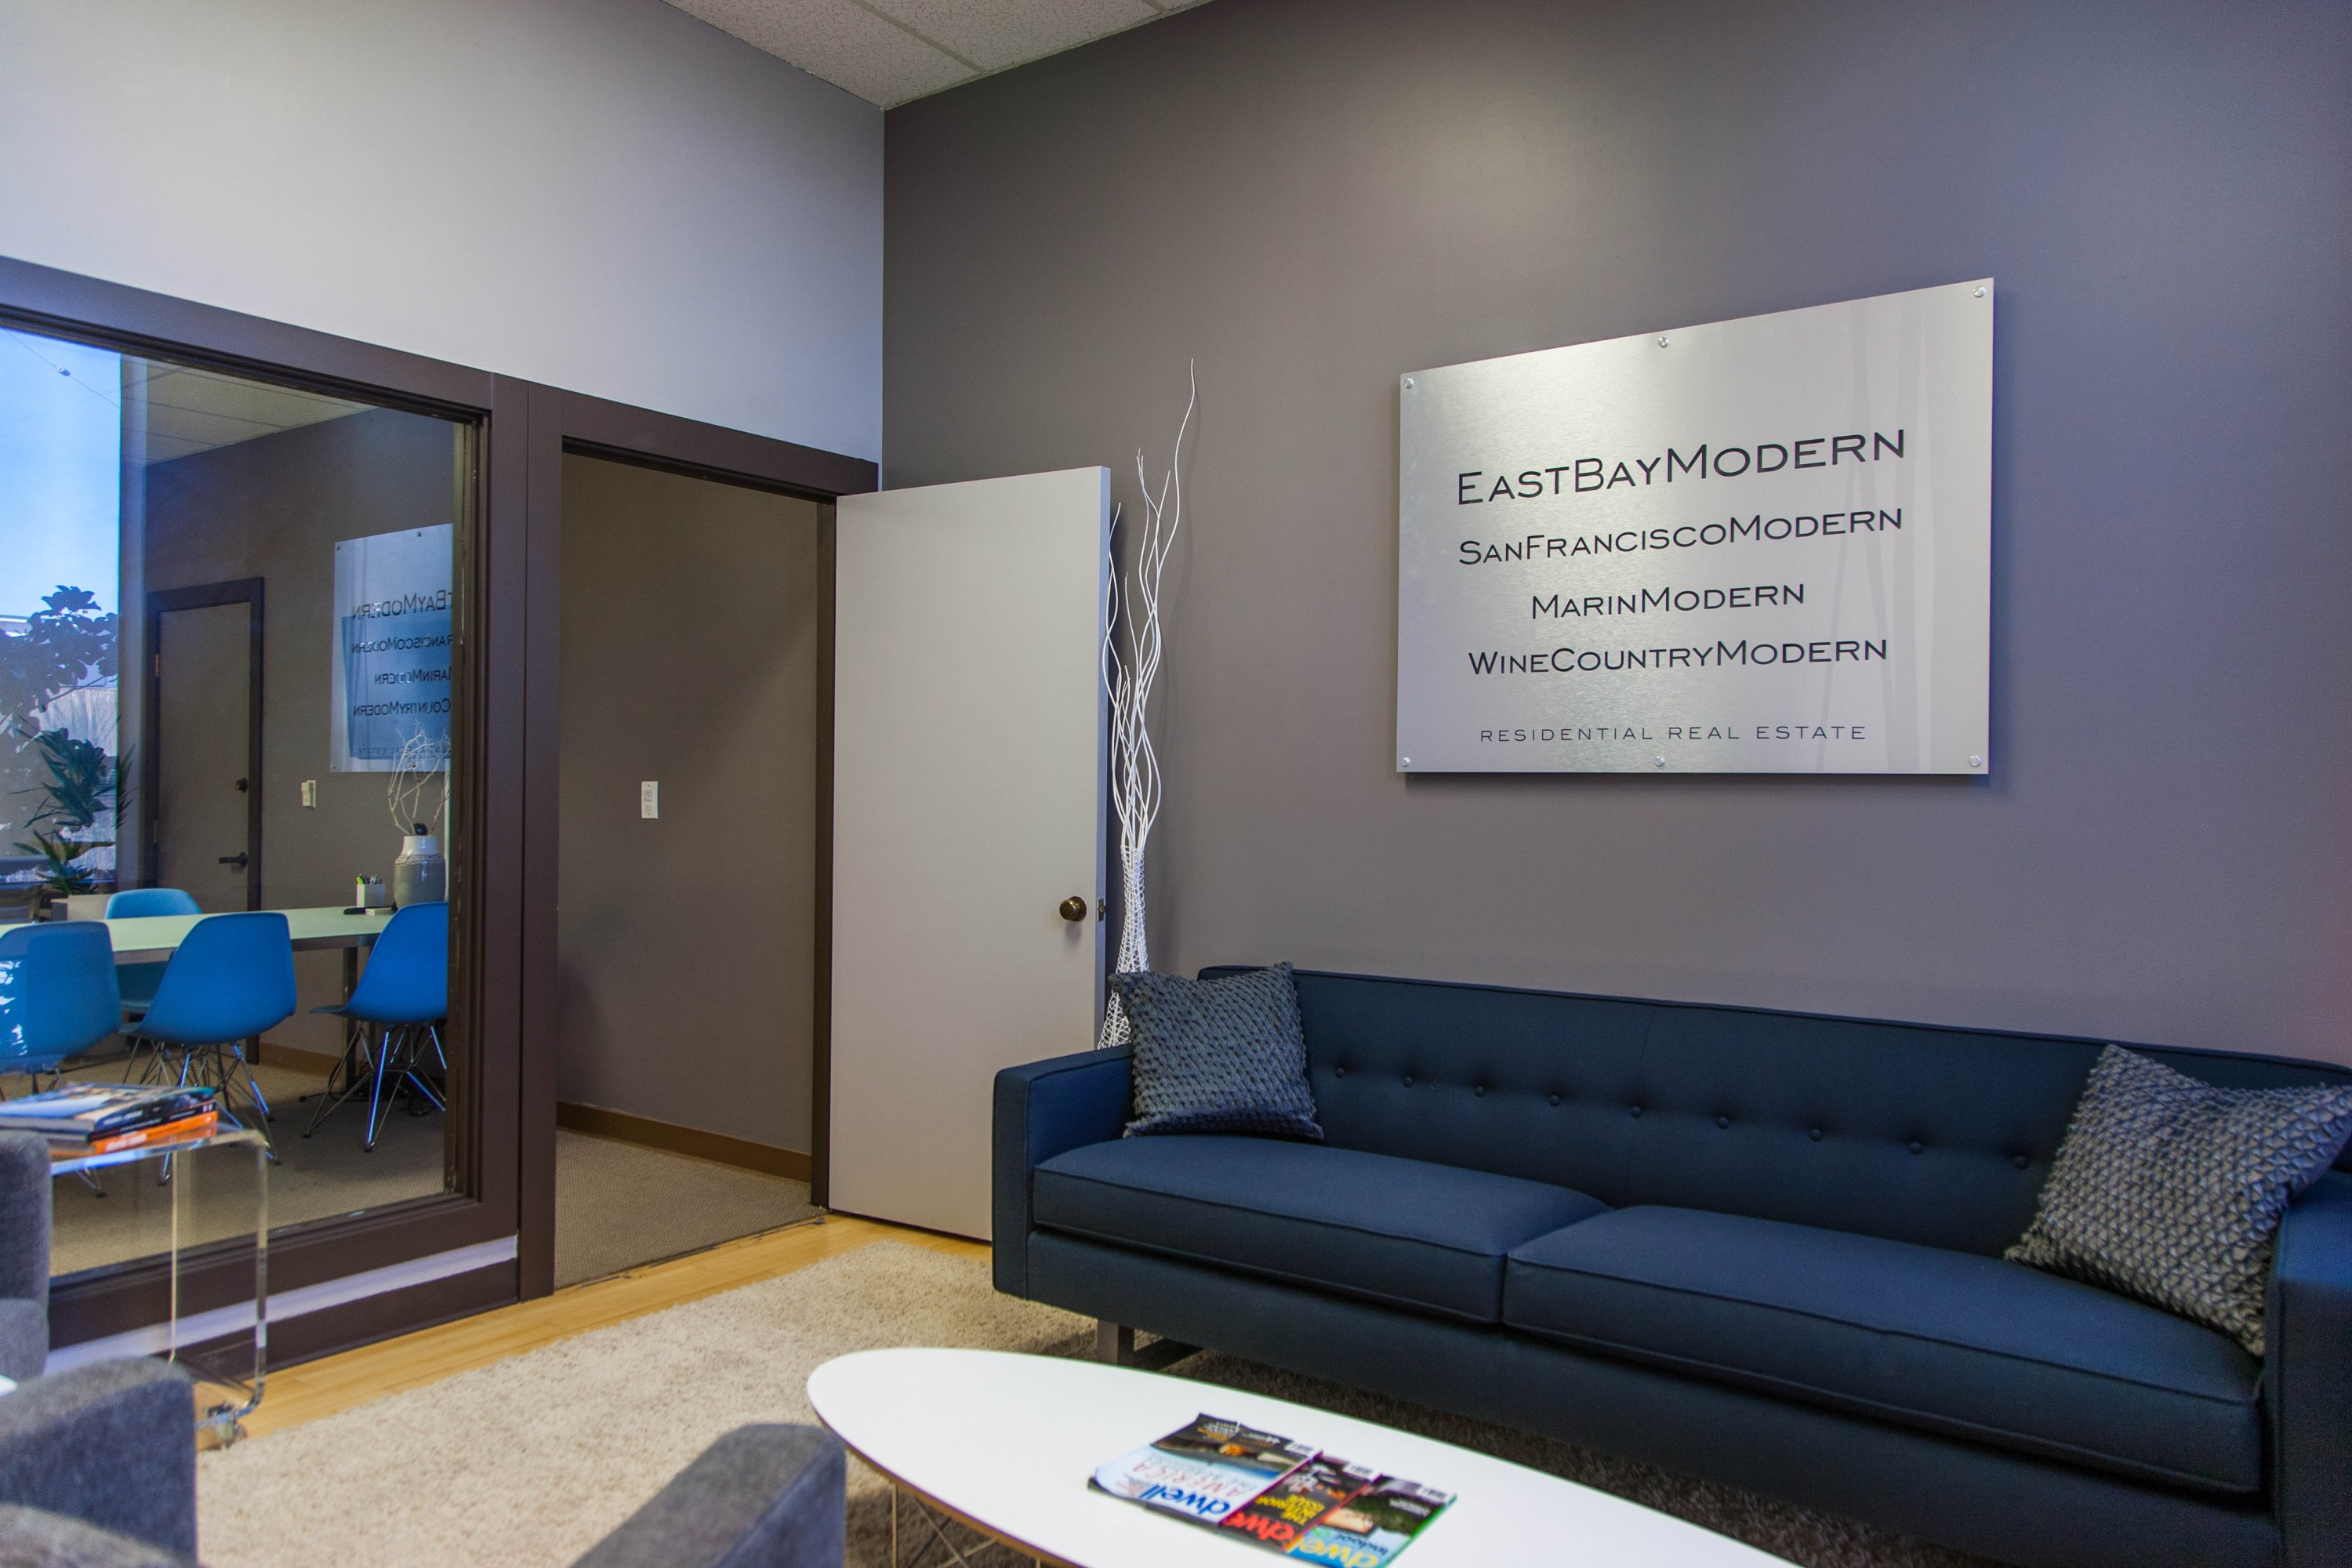 Modern Furniture East Bay east bay modern real estate opens new office in oakland's jack